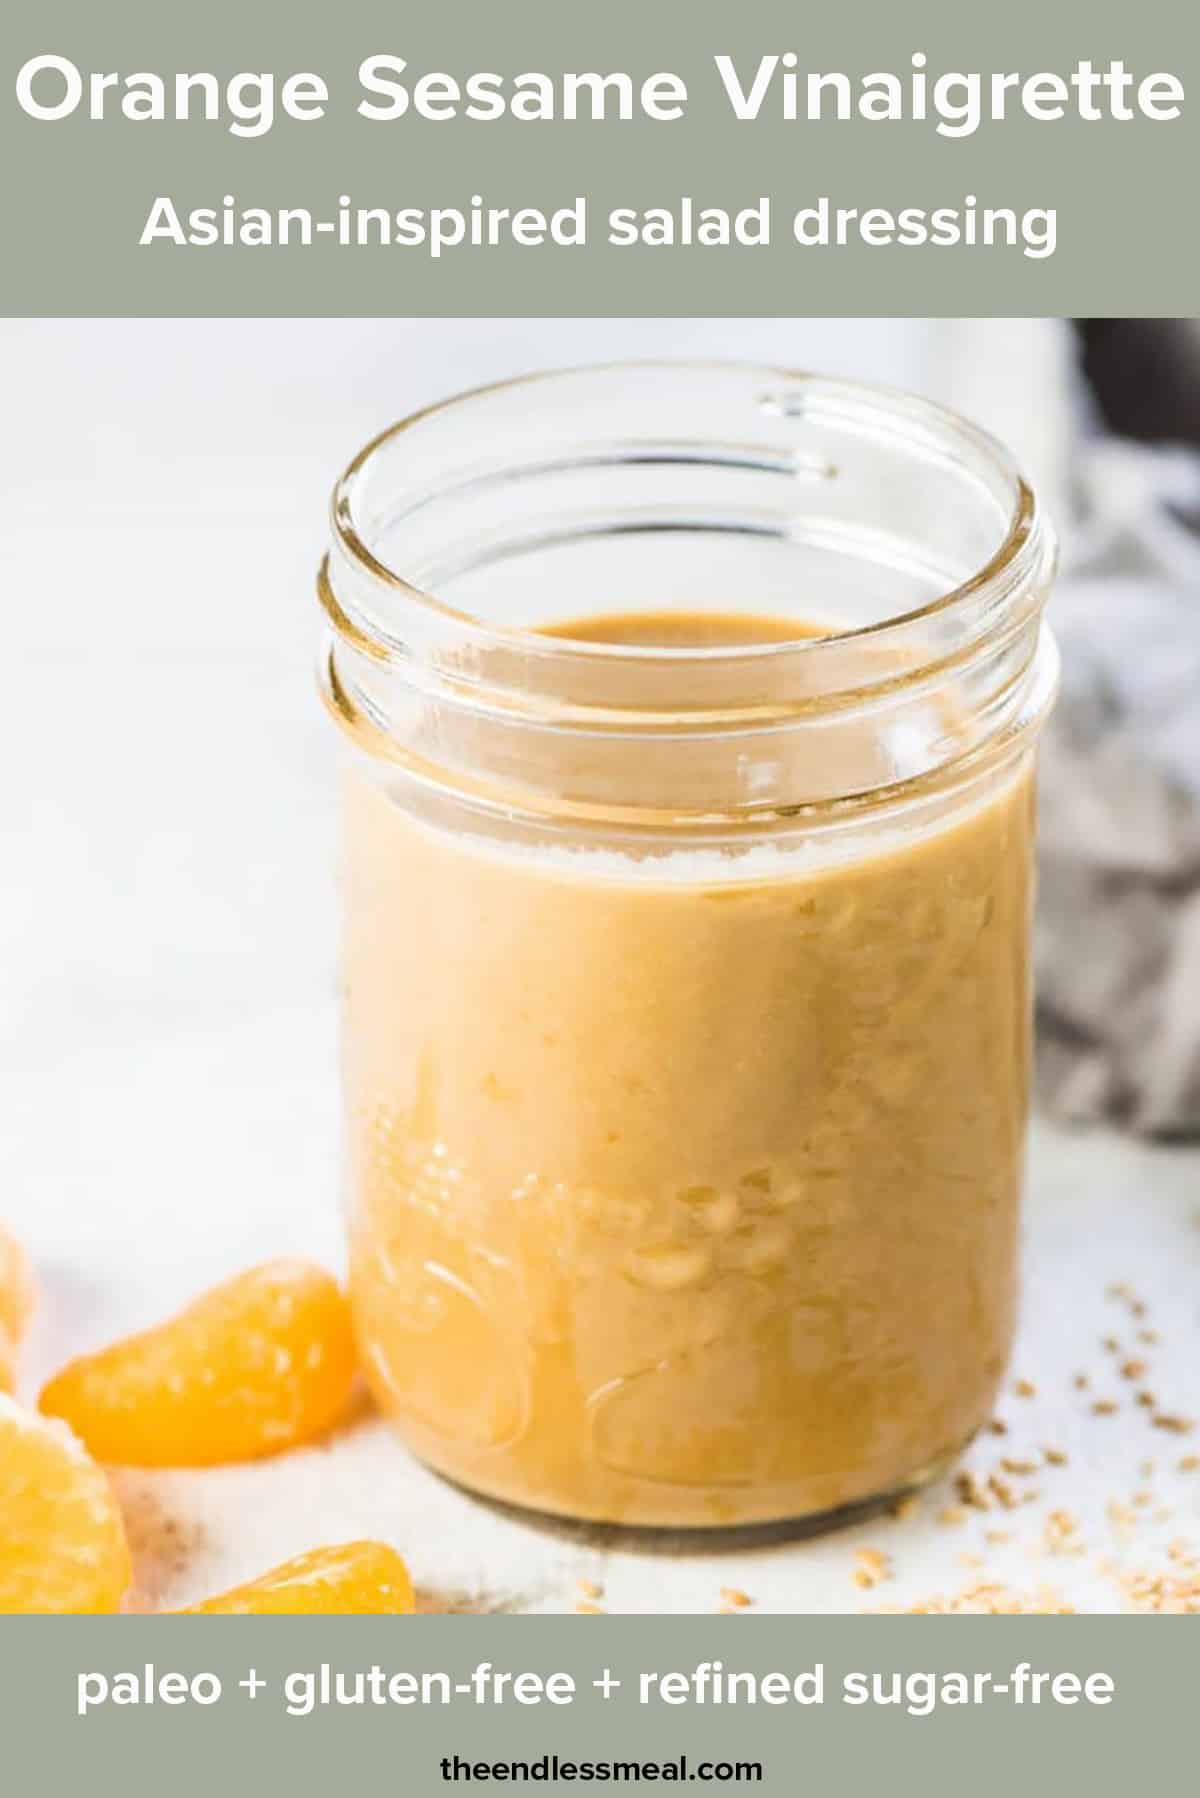 A glass jar of Sesame Orange Vinaigrette with some orange slices beside it and the recipe title on top of the picture.